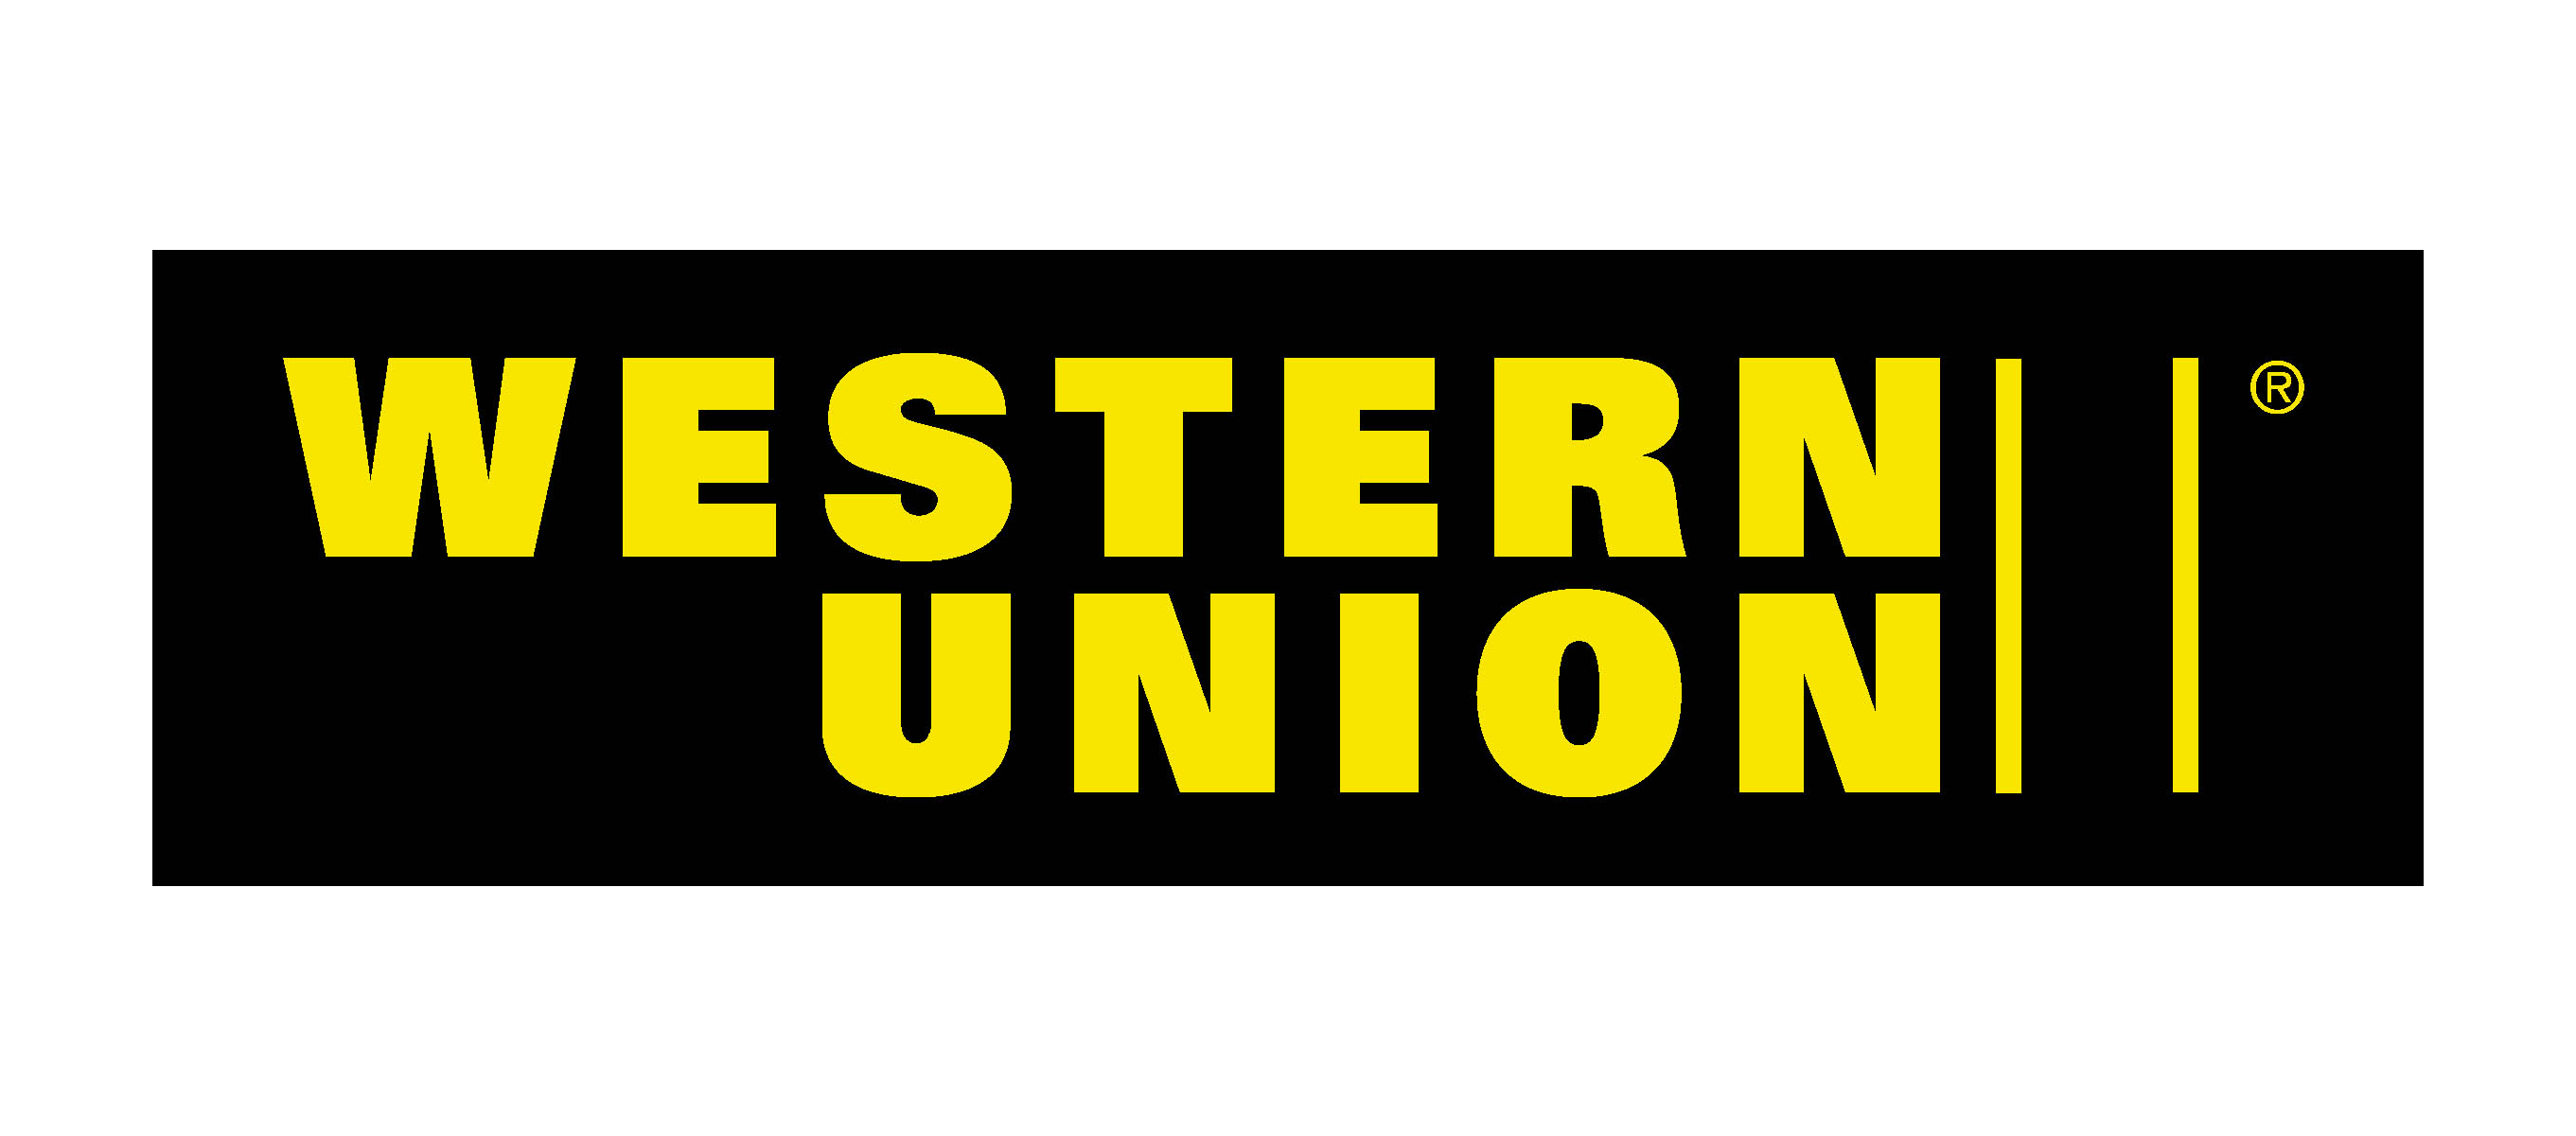 transferring international currency with western union